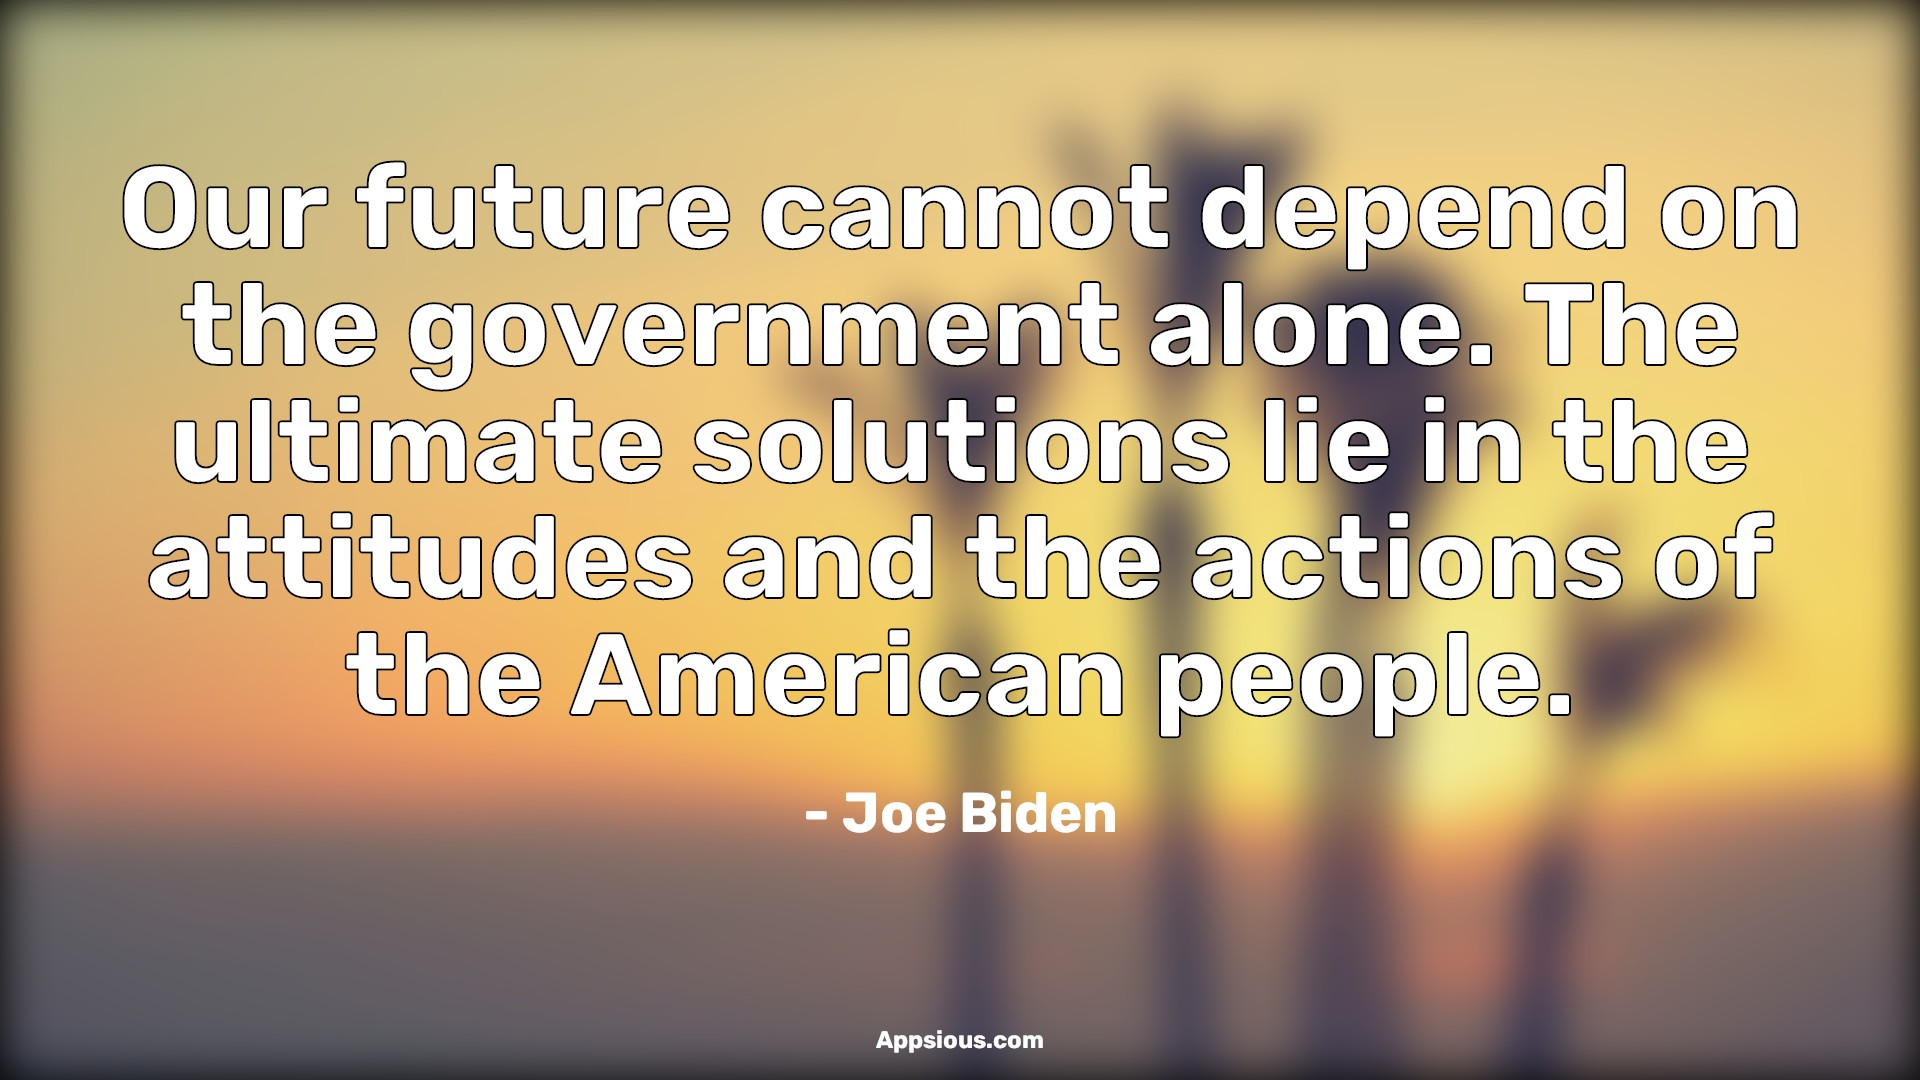 Our future cannot depend on the government alone. The ultimate solutions lie in the attitudes and the actions of the American people.